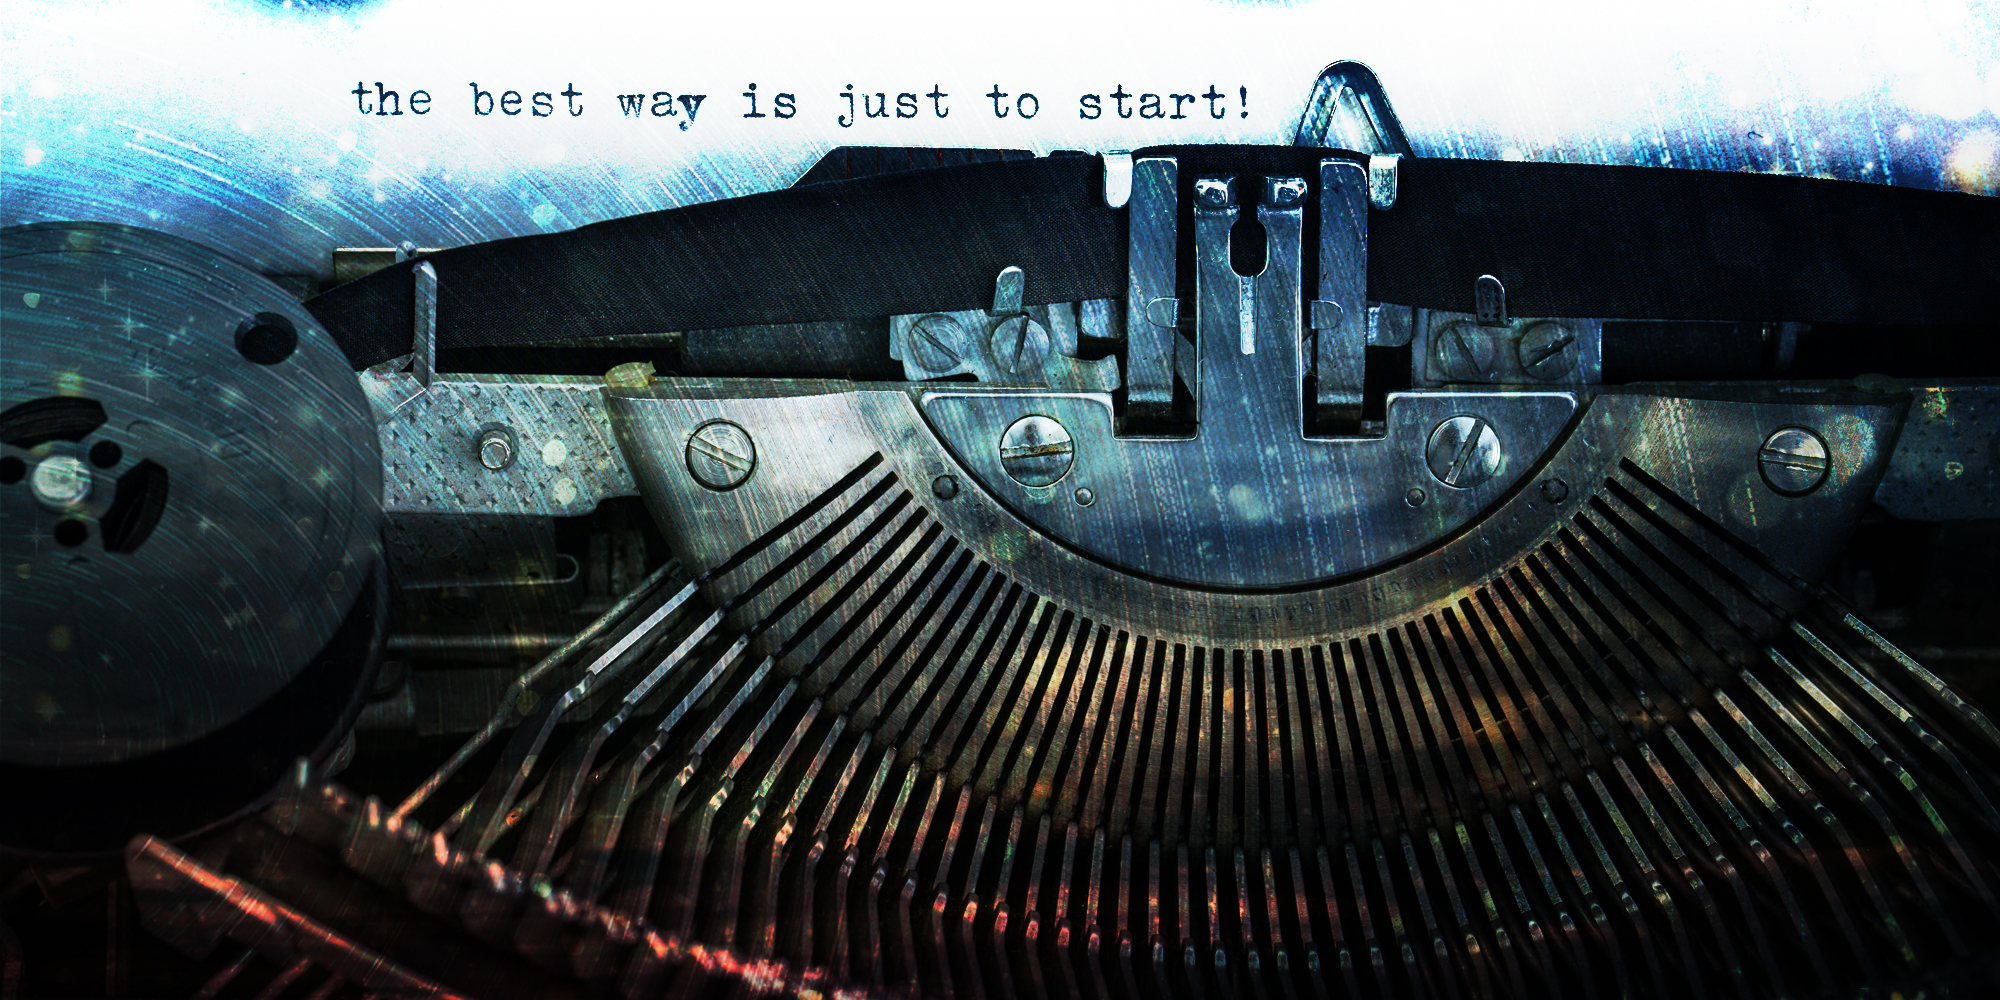 Managing your Maturing Website of old typewriter with words typed on the paper - the best way is just to start.